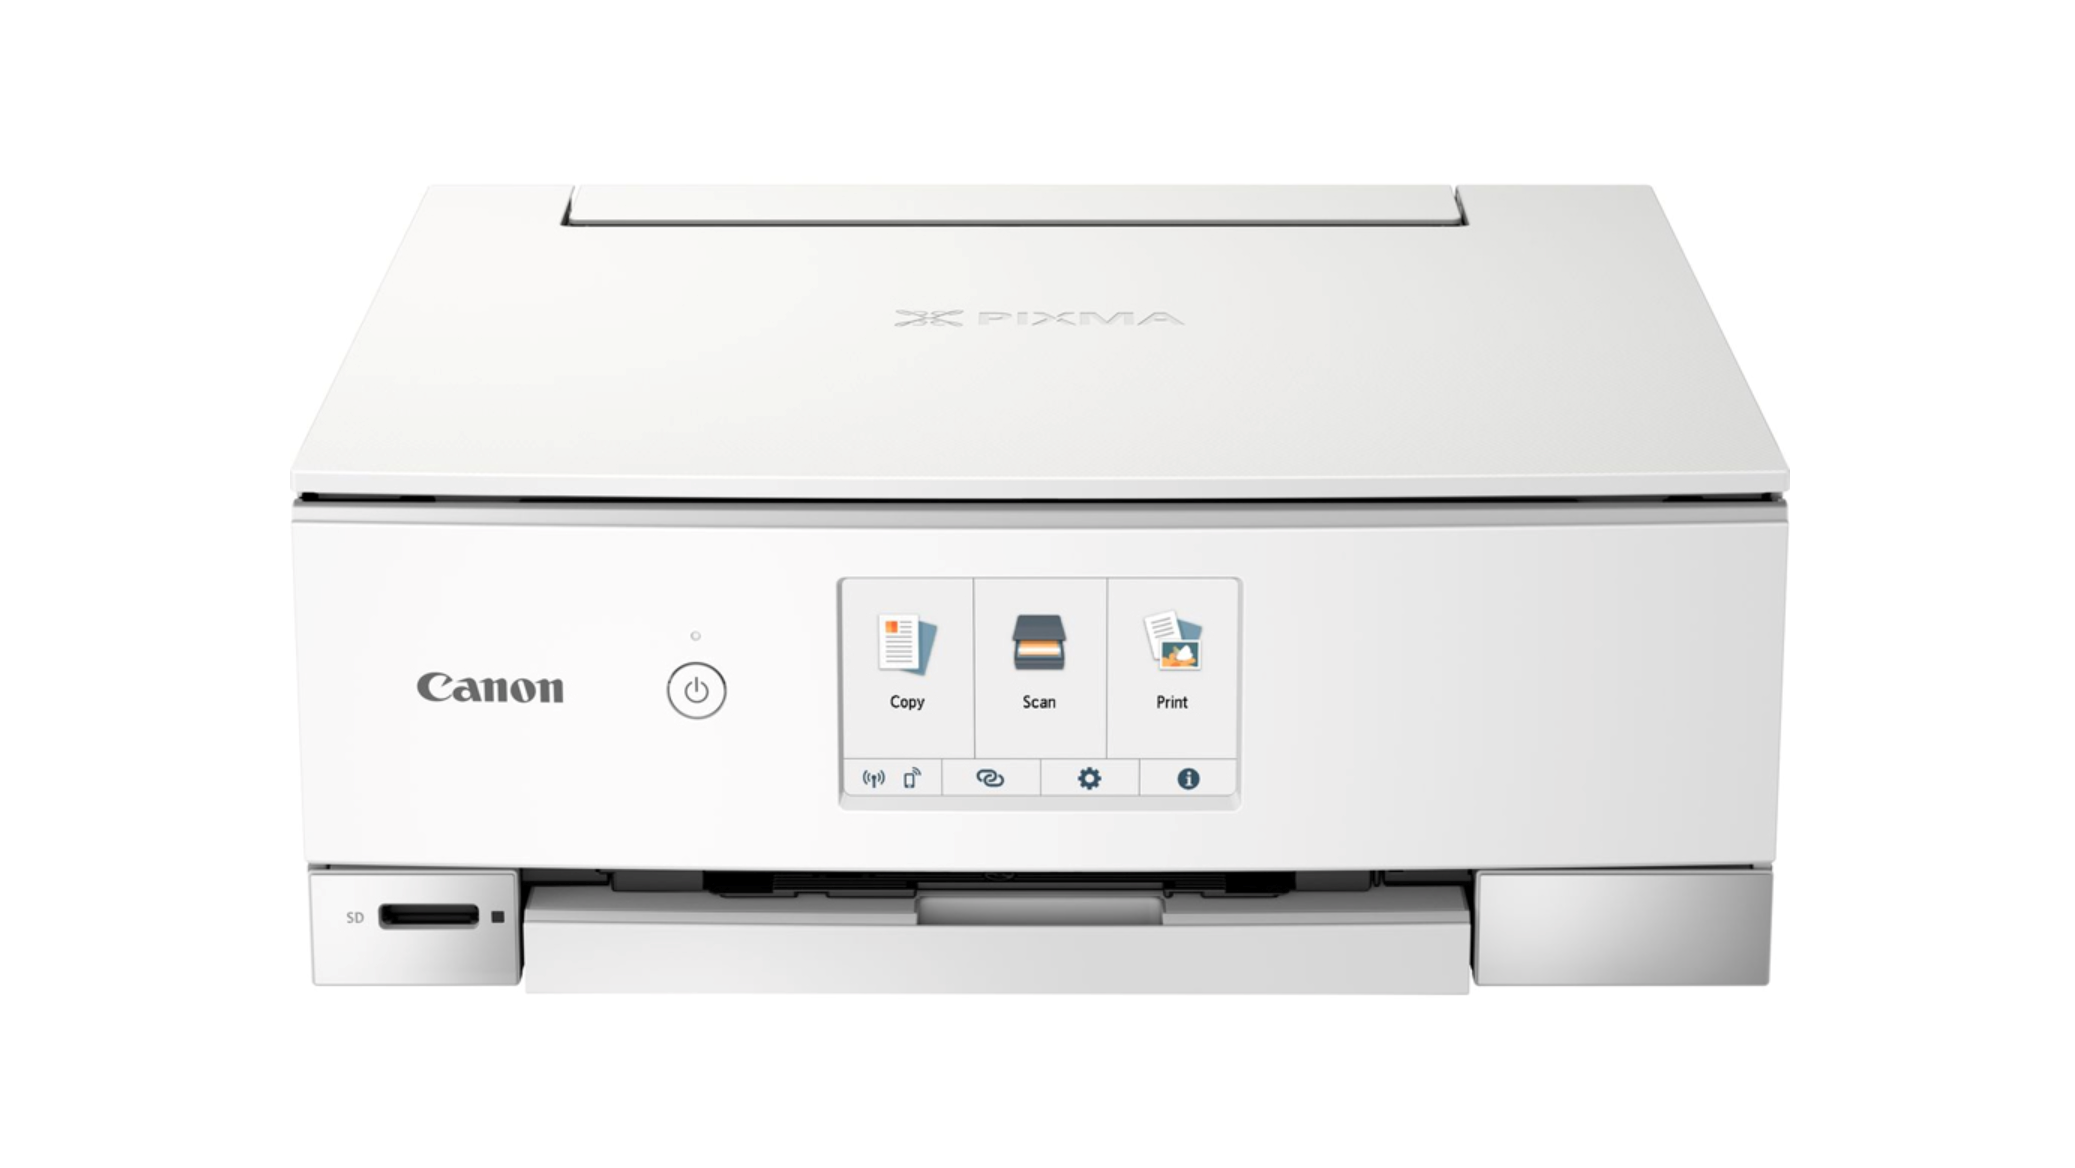 Best Printer 2020.Best Printer For Mac In 2020 Top Printers For Your Apple